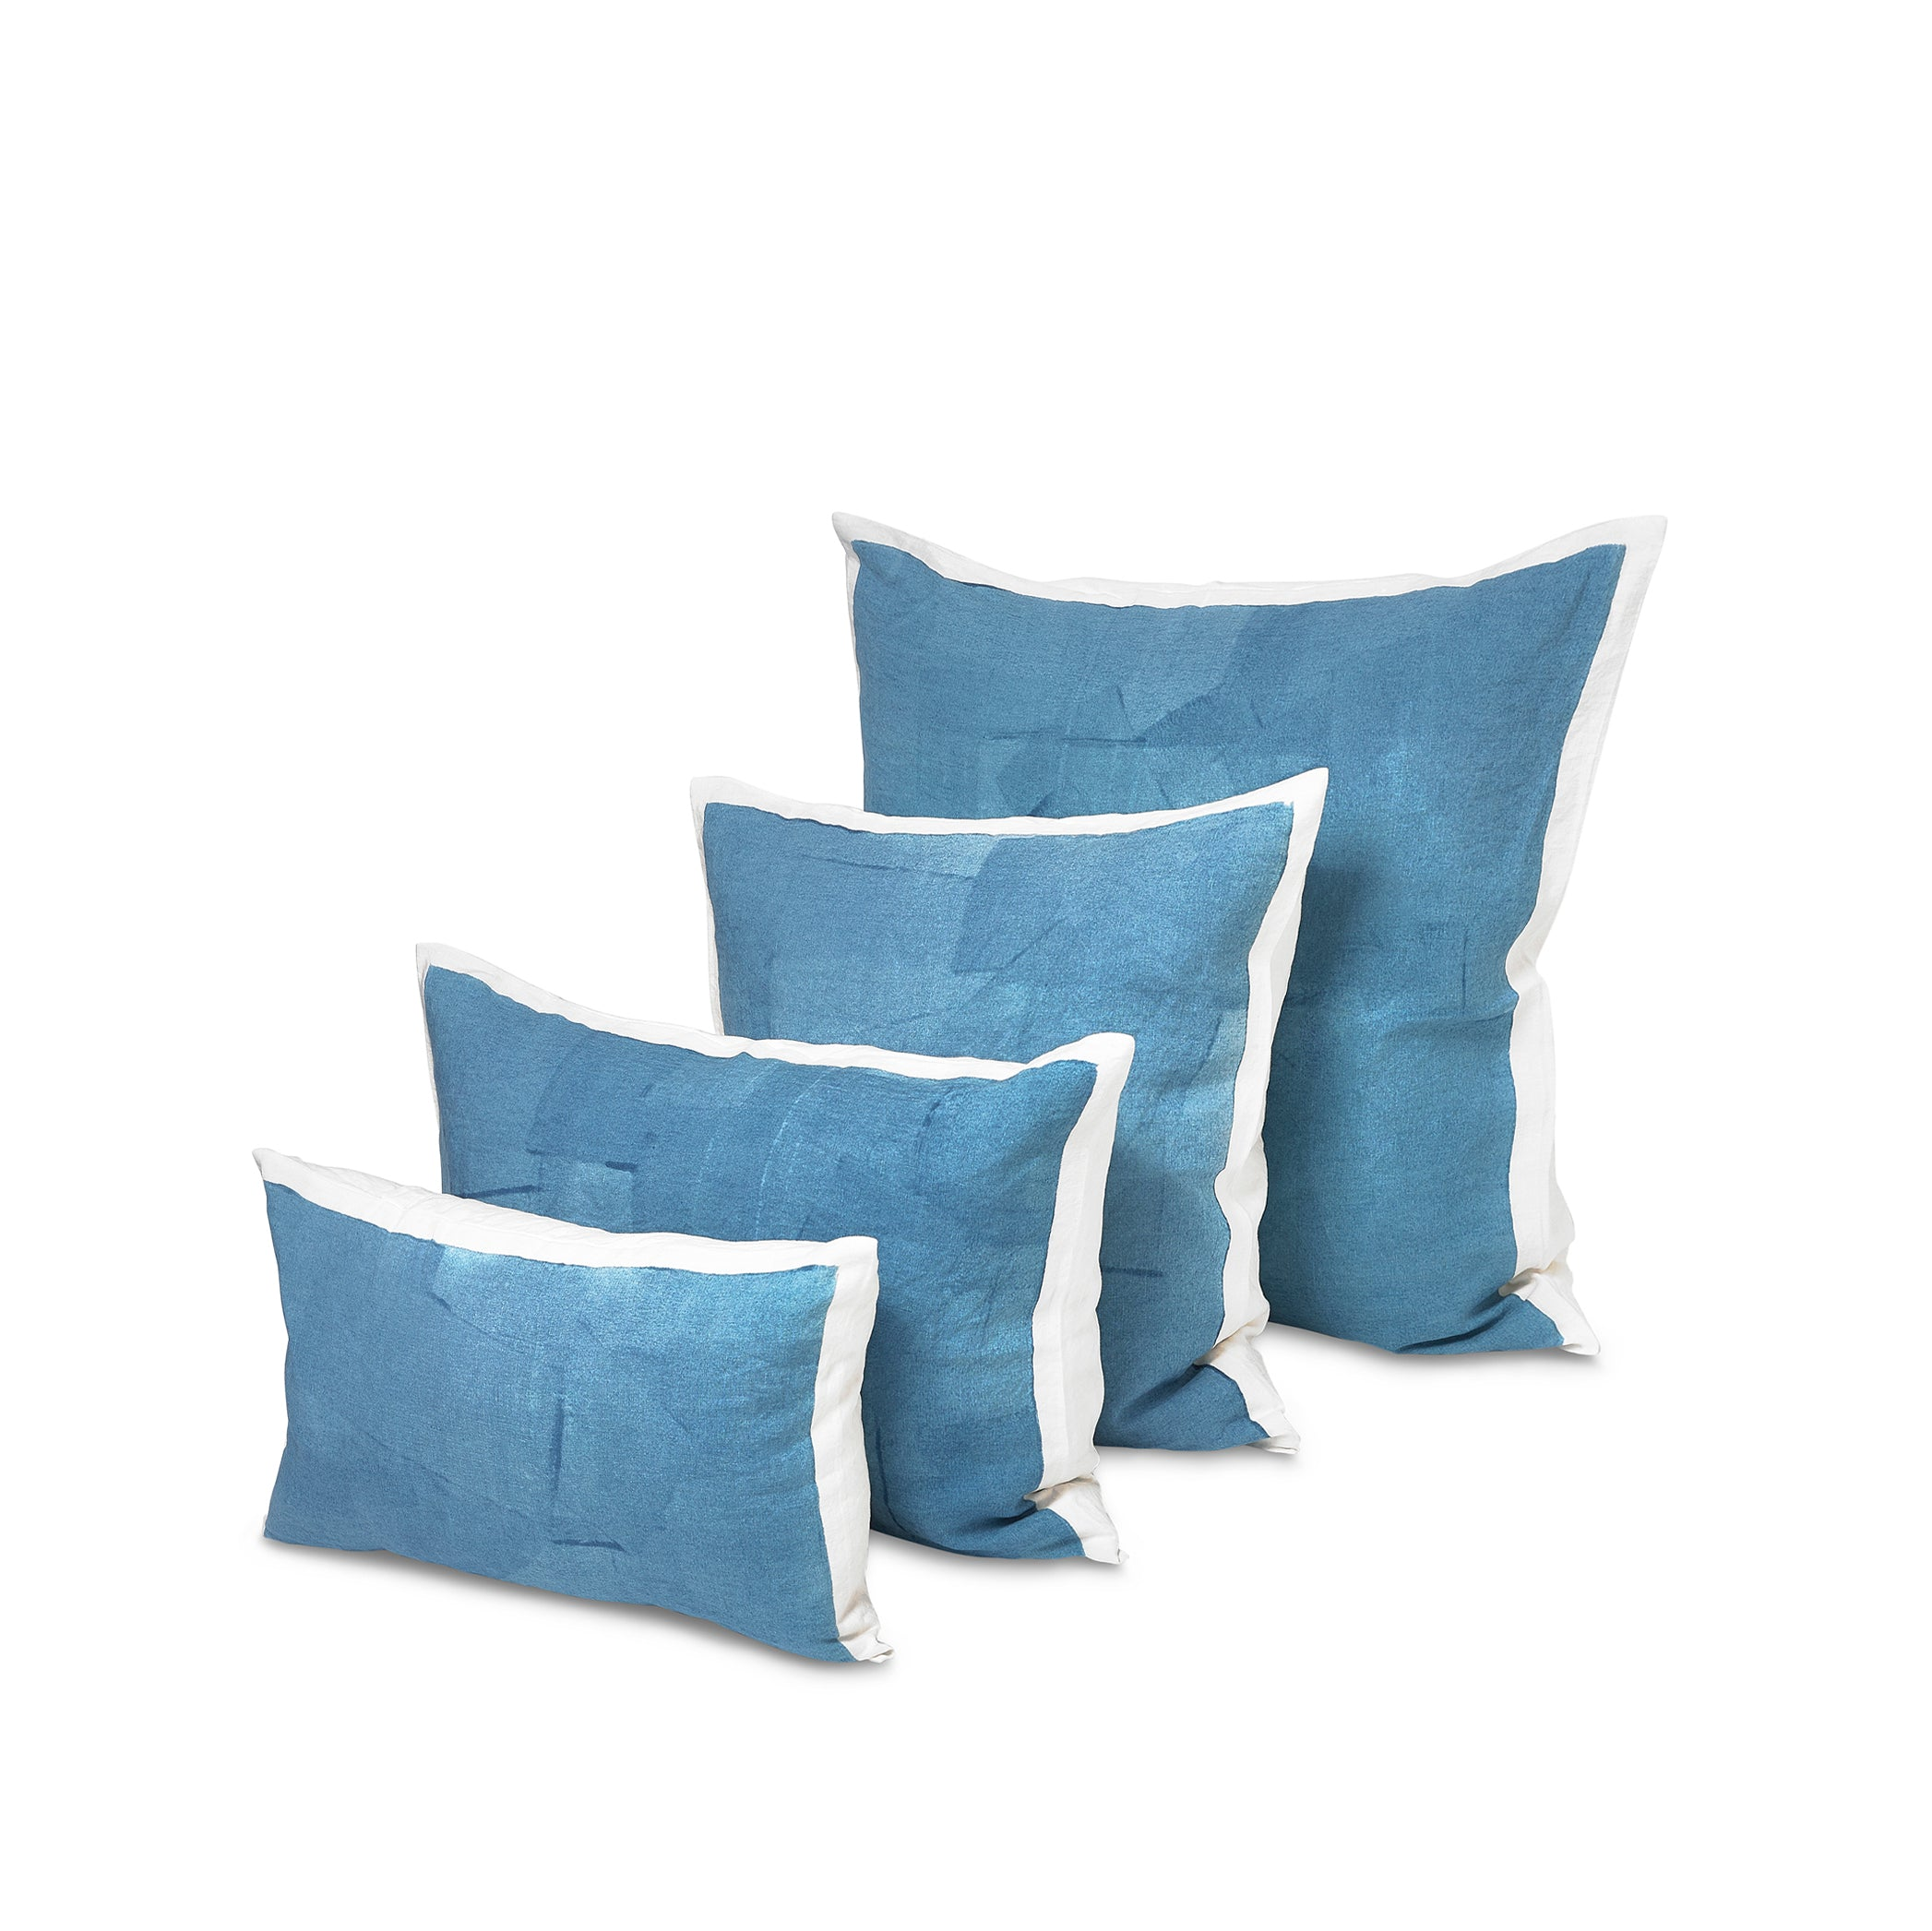 Hand Painted Linen Cushion Cover in Sky Blue, 60cm x 60cm